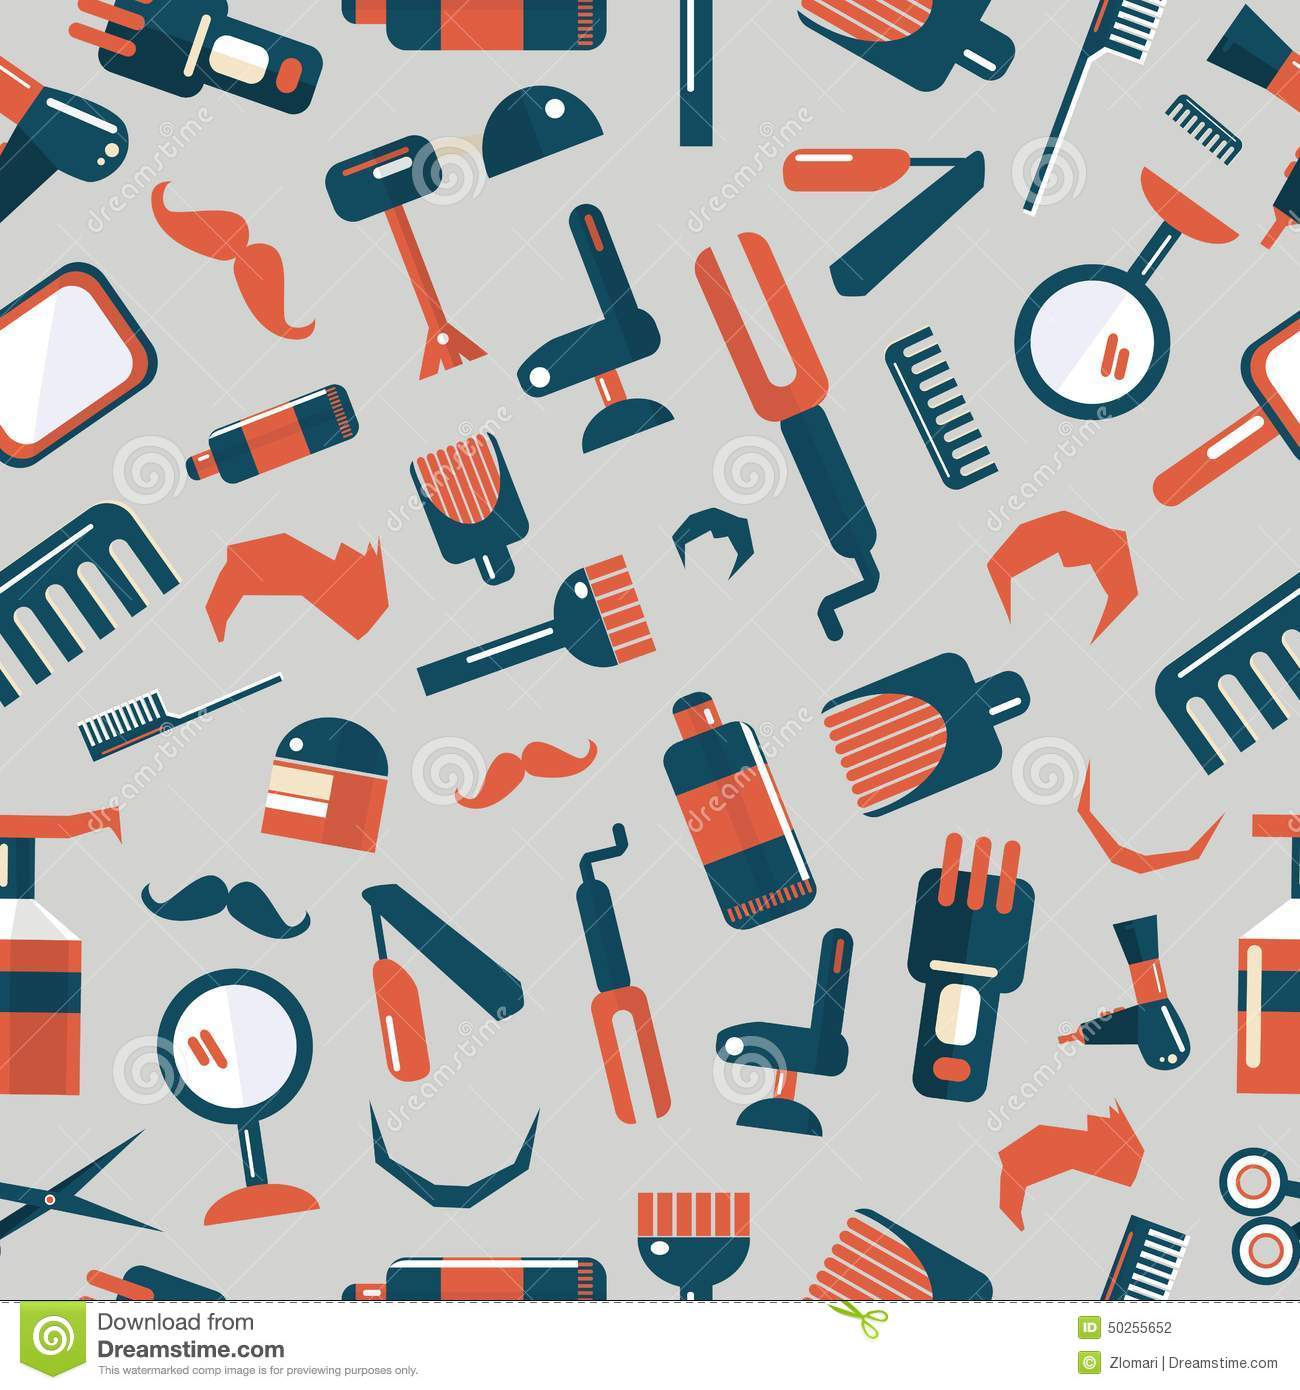 barber background - photo #28